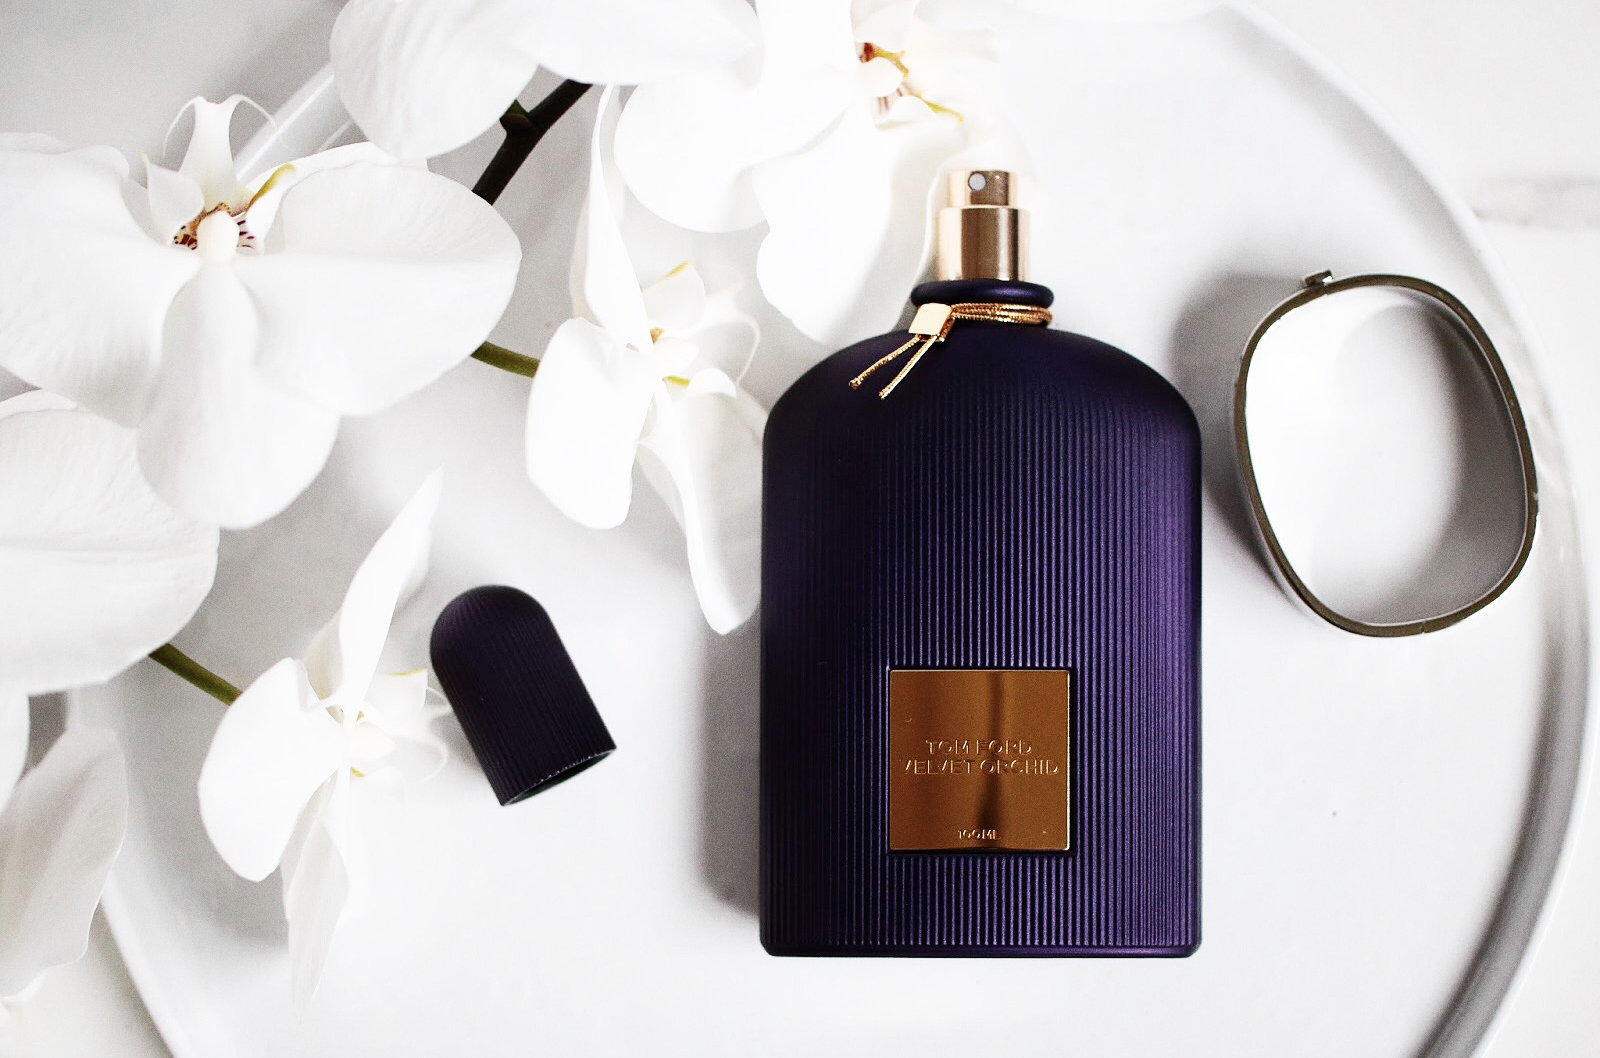 tom ford velvet orchid parfum avis test